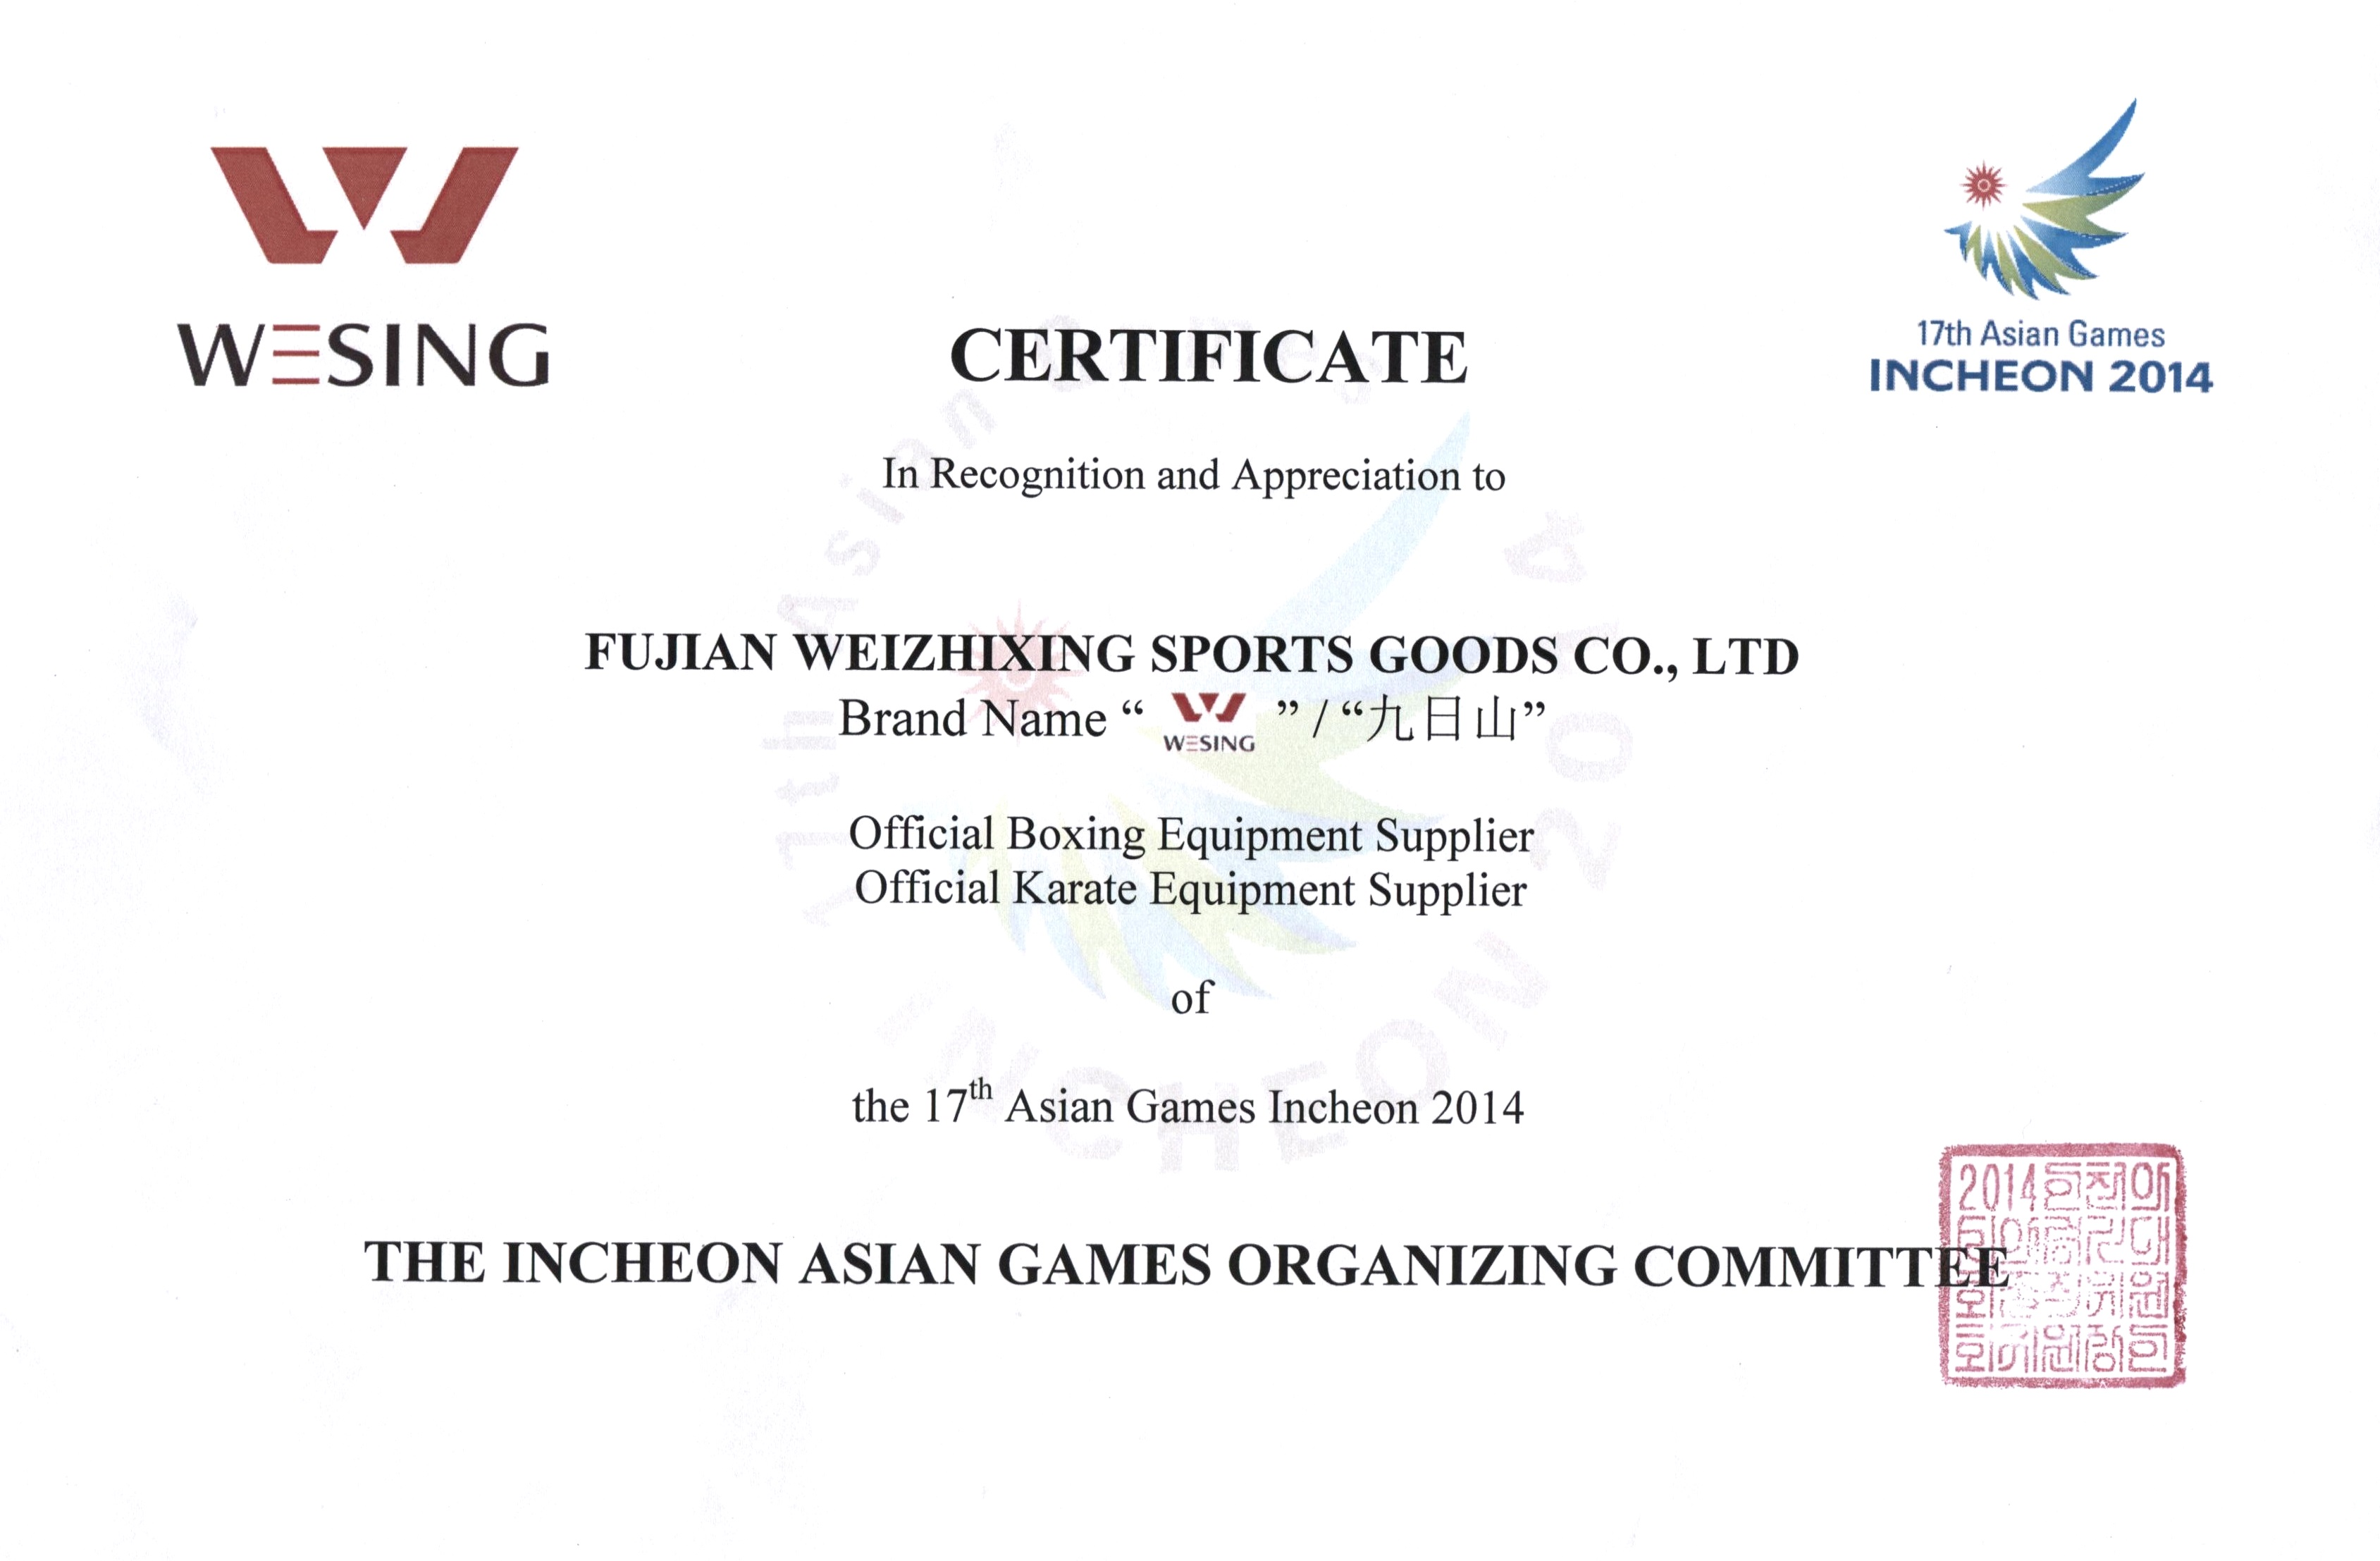 17th Asian Games Supplier certificate WESING